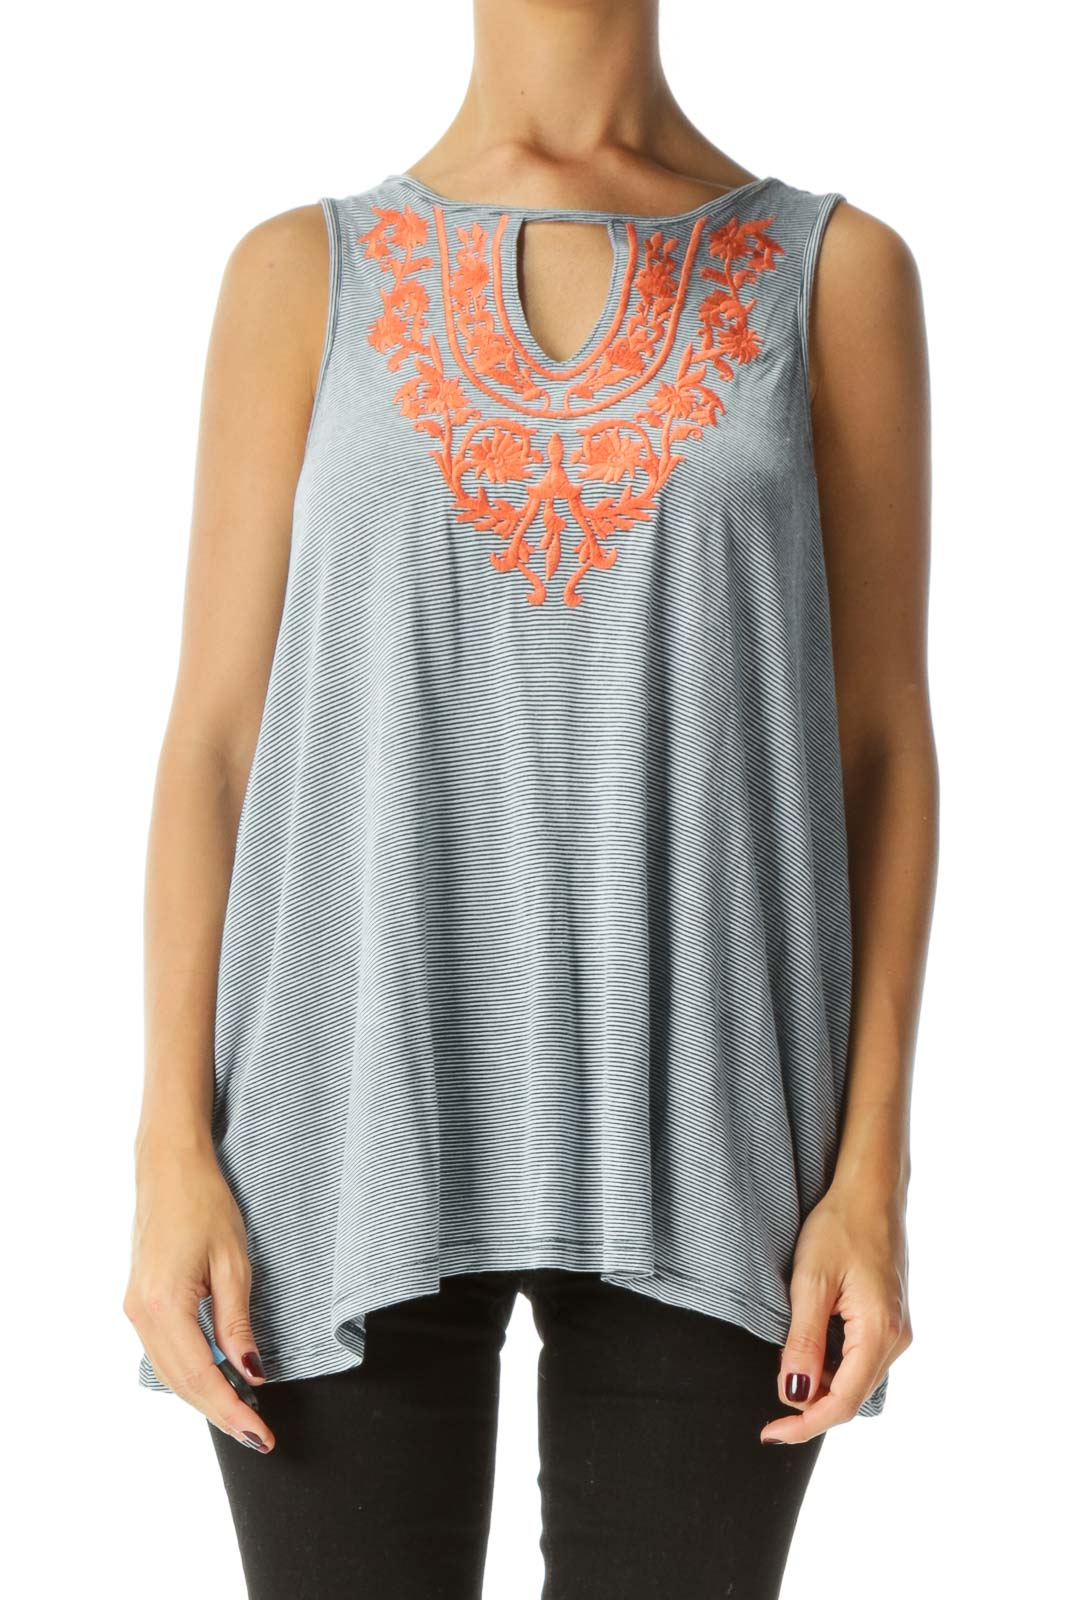 Blue White Orange Embroidery Keyhole Jersey Knit Tank Top